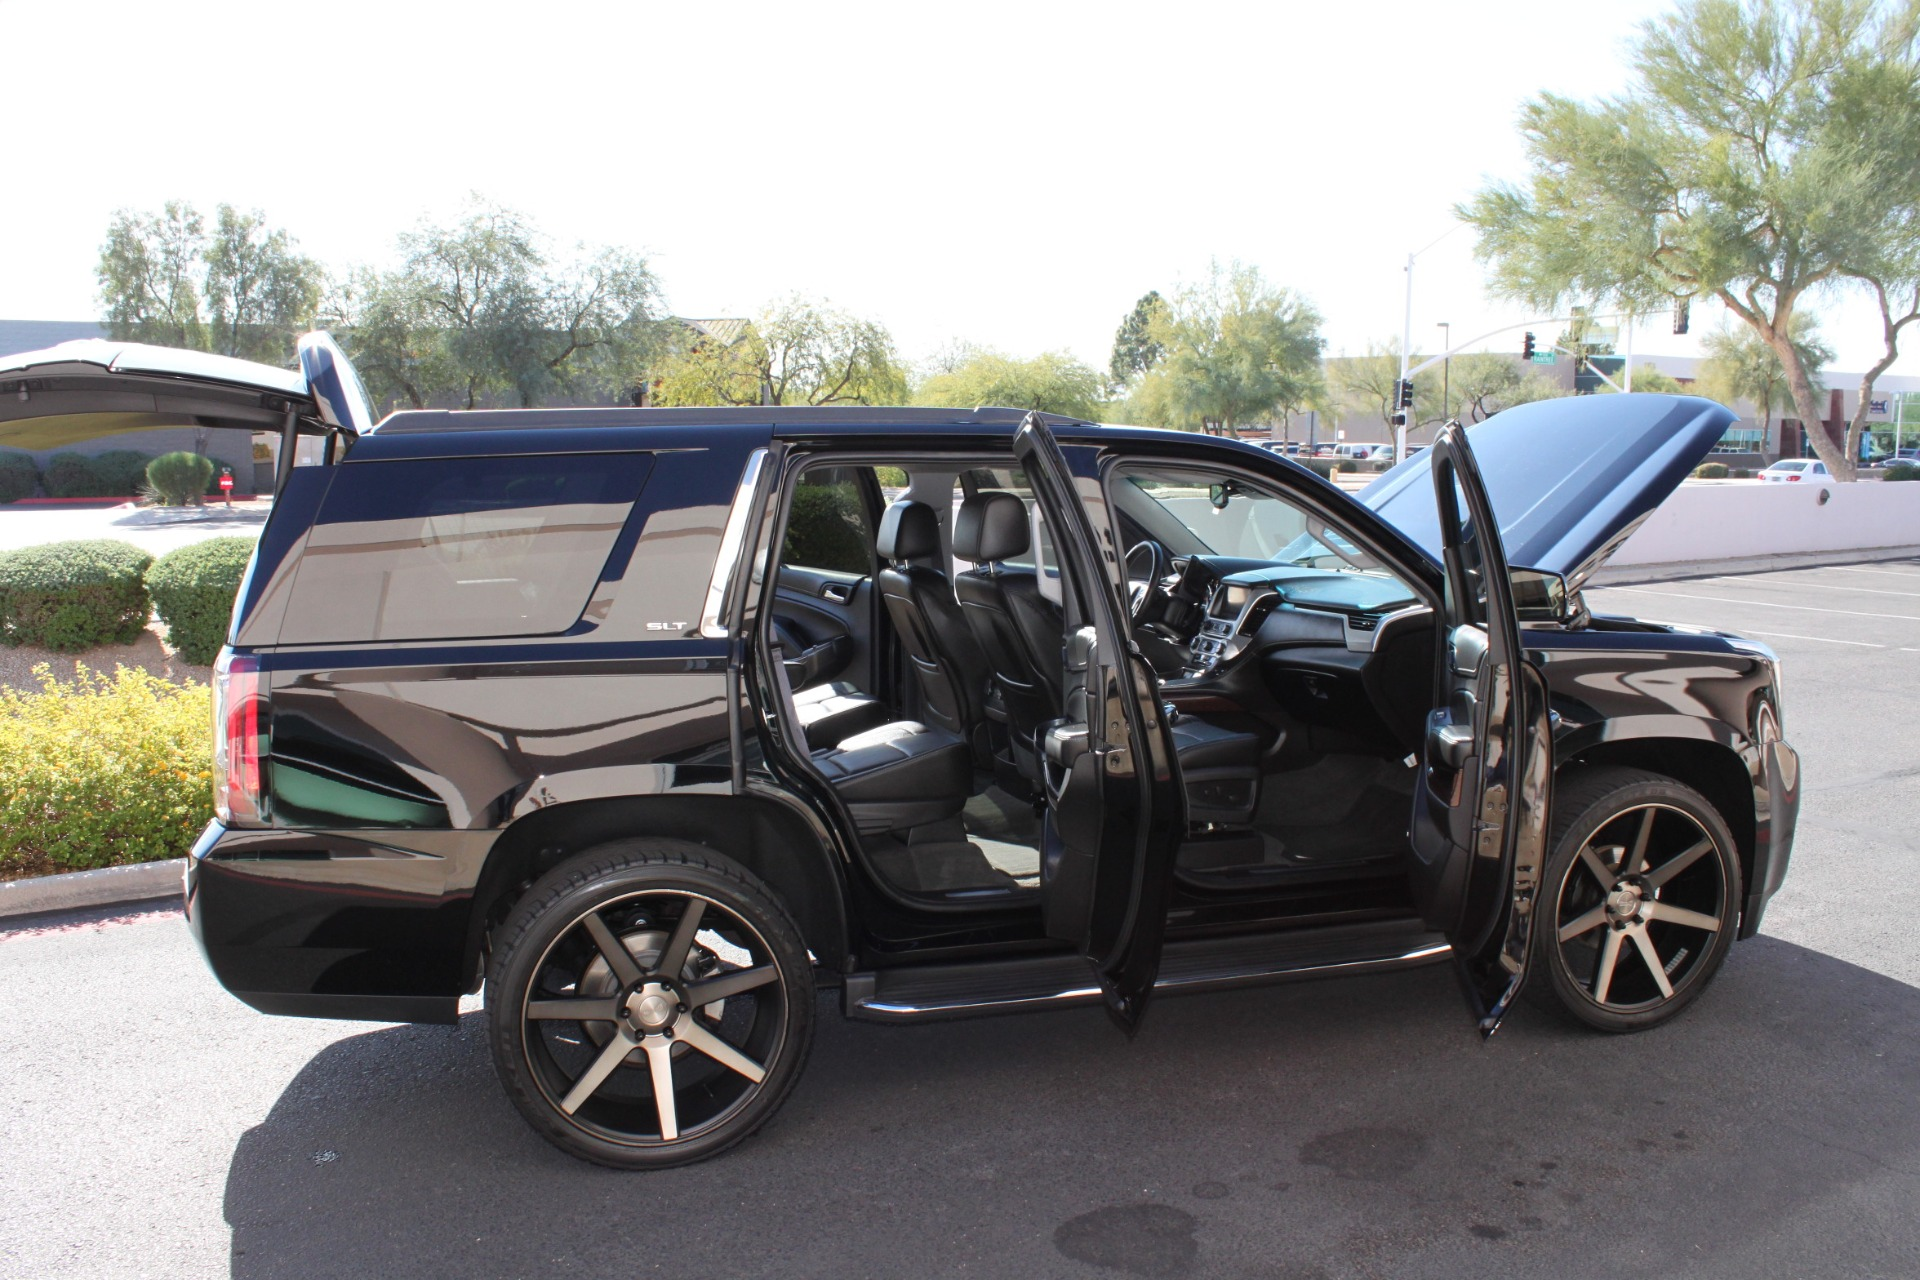 Used-2015-GMC-Yukon-SLT-Jaguar